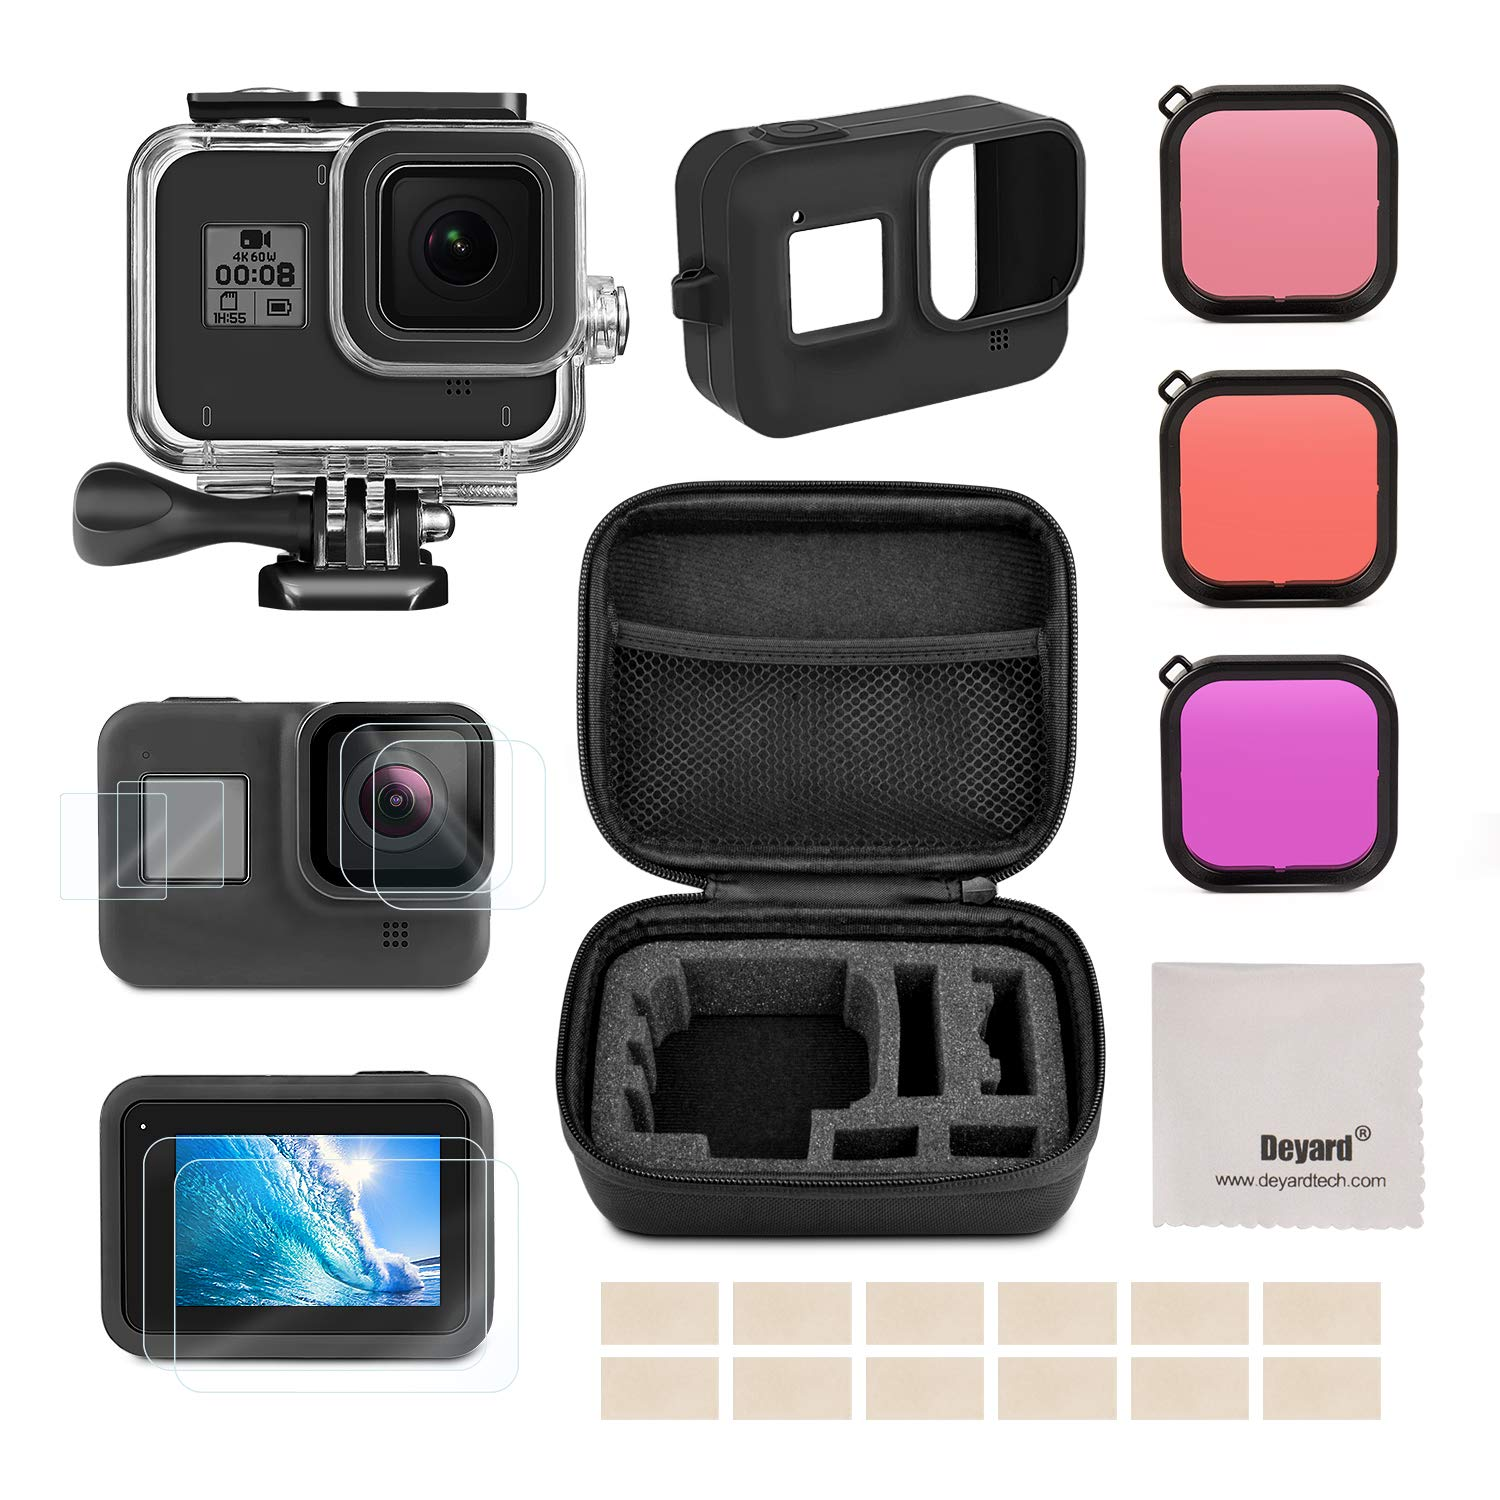 Deyard Accessories Kit for GoPro Hero 8 Black with Shockproof Small Case + Waterproof Case + Tempered Glass Screen Protector + Silicone Cover + Lens Filters + Anti-Fog Inserts Bundle for GoPro Hero 8 by Deyard